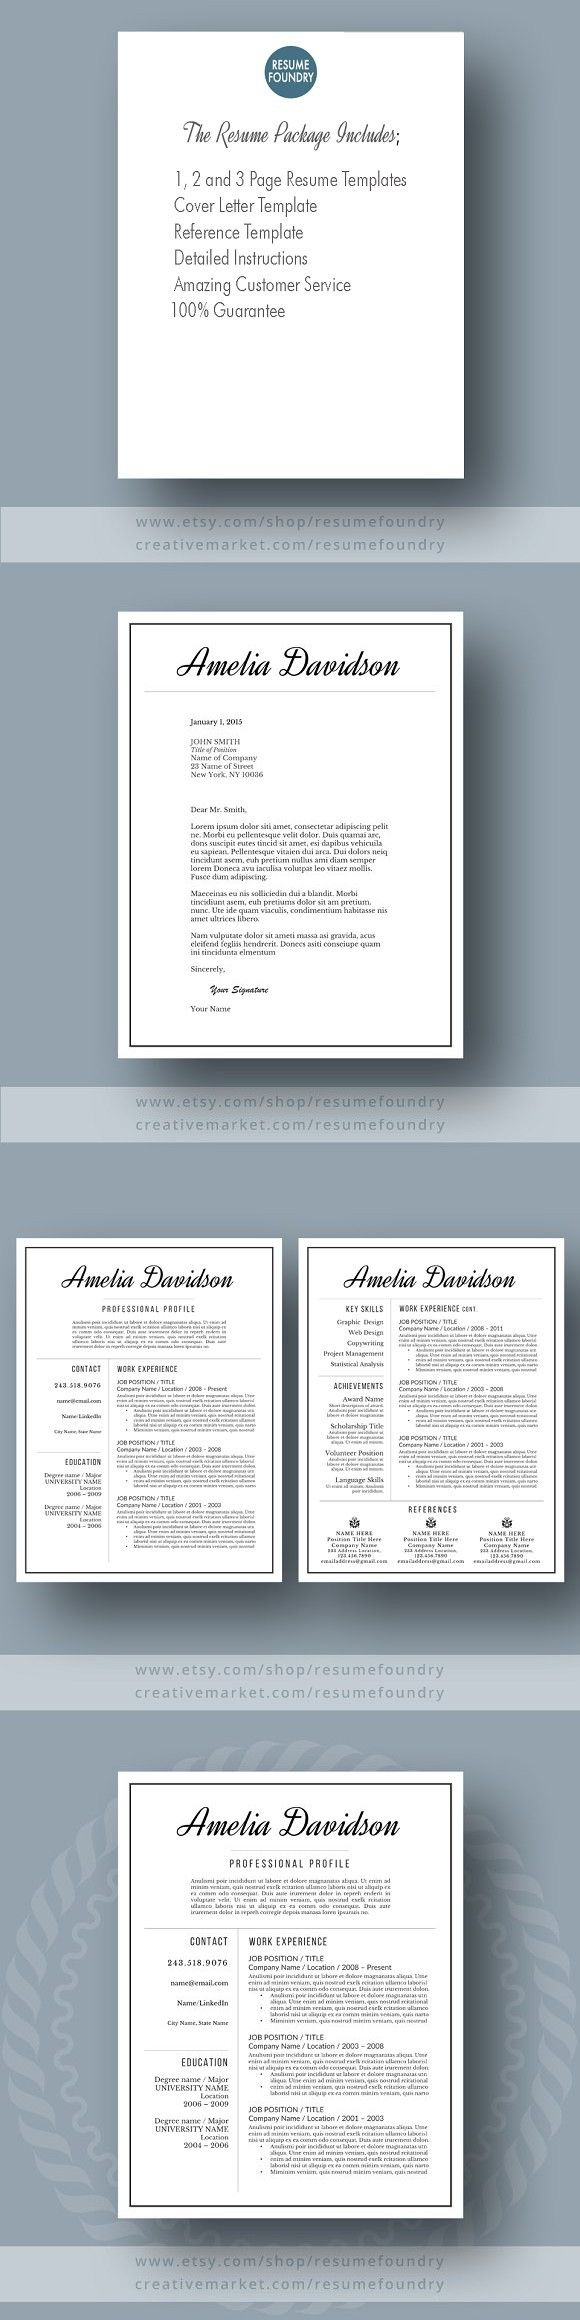 Resume and Cover Letter resumetemplate resumetemplates 576